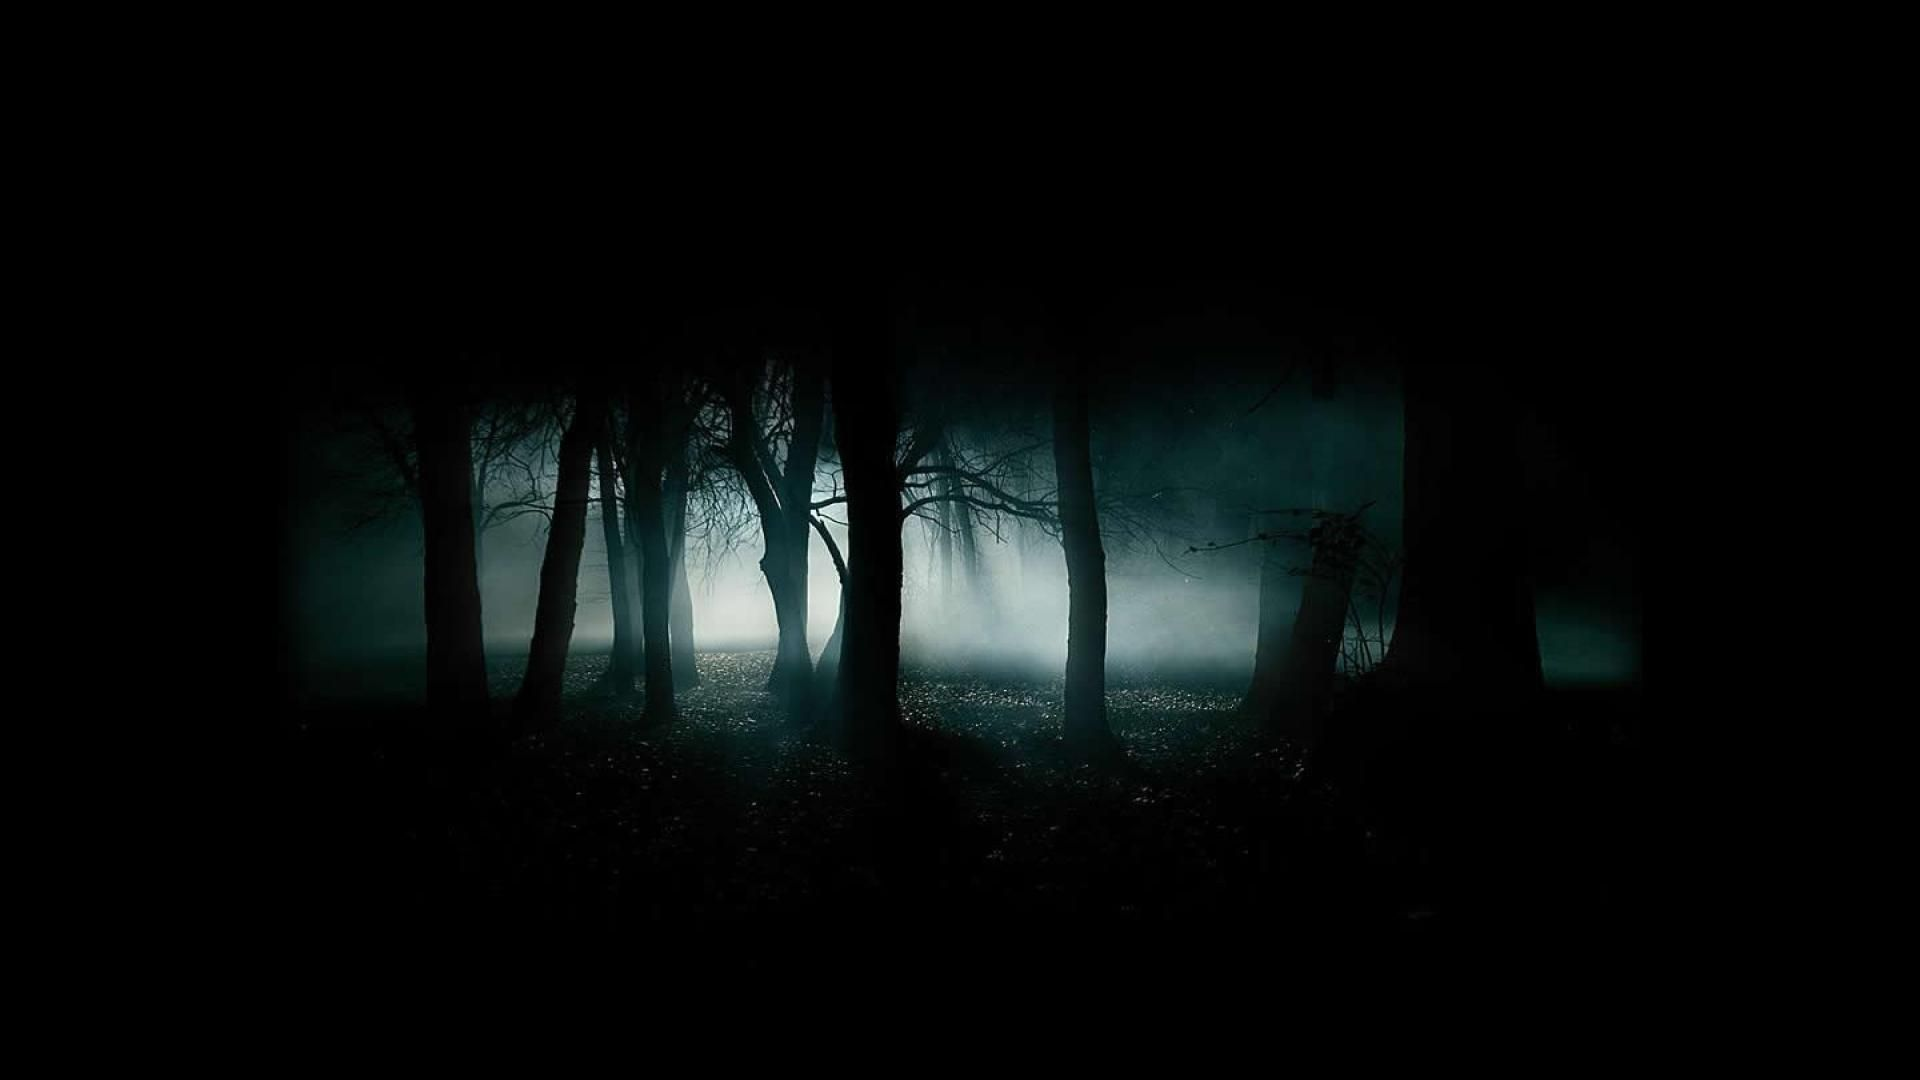 10 Top Scary Desktop Backgrounds Hd Full Hd 1080p For Pc Desktop Scary Backgrounds Scary Wallpaper Scary Woods